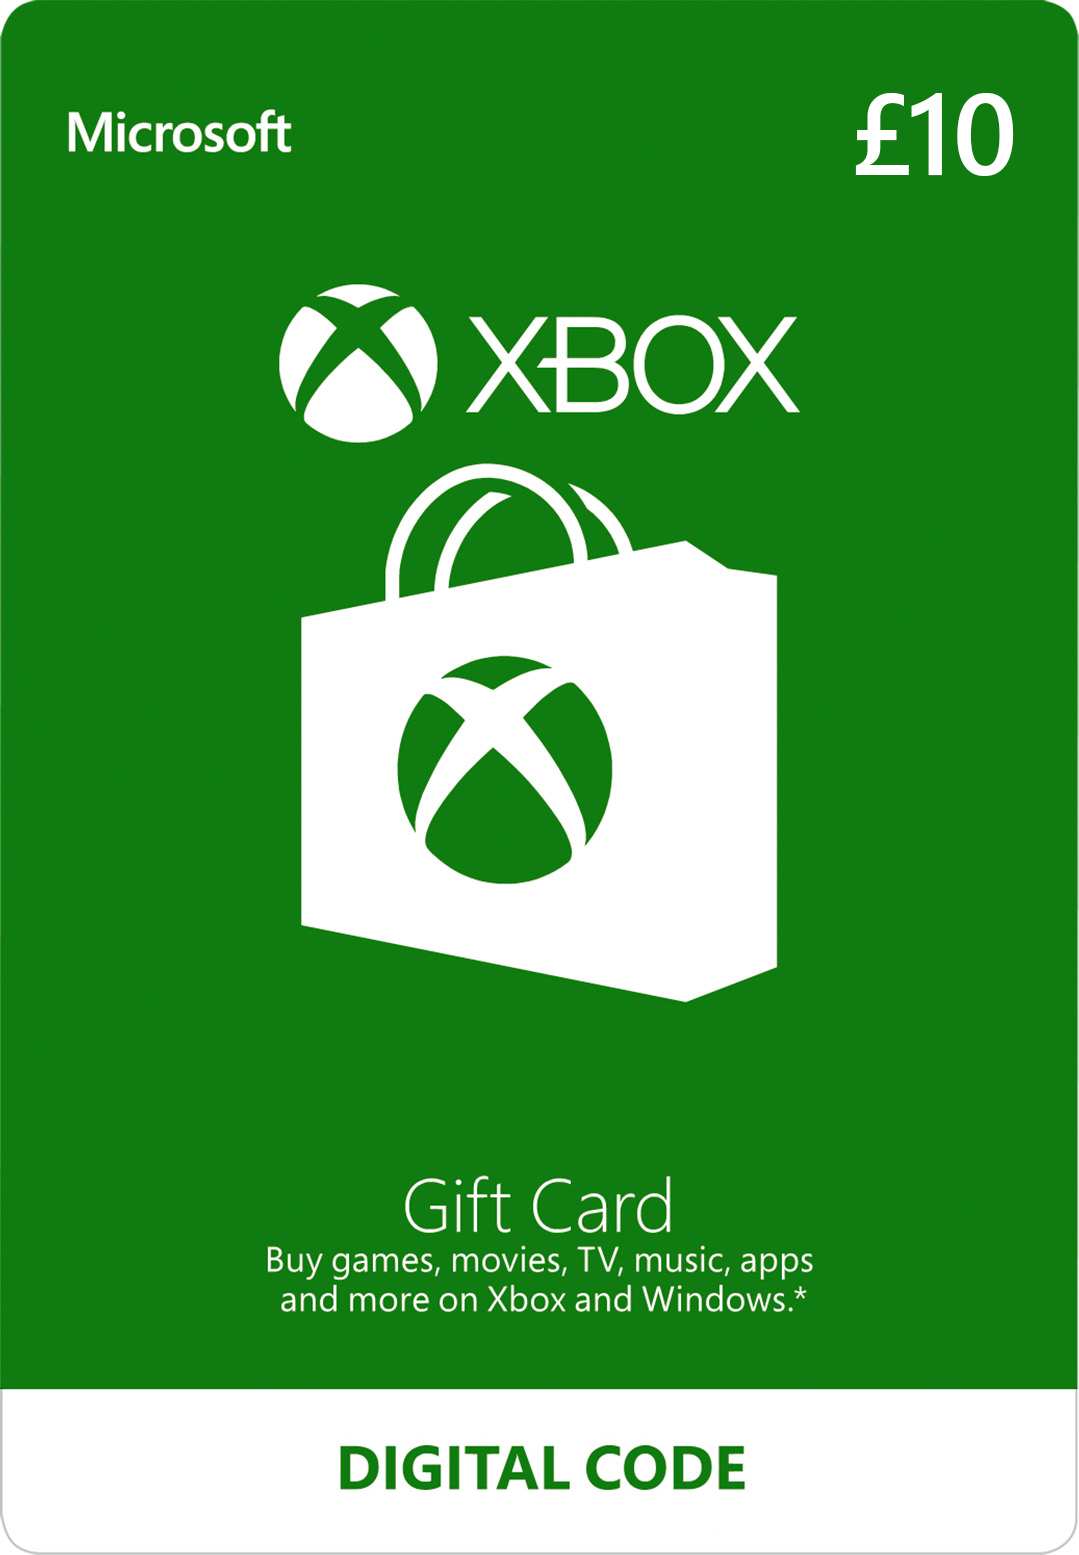 Xbox Digital Gift Card: £10.00